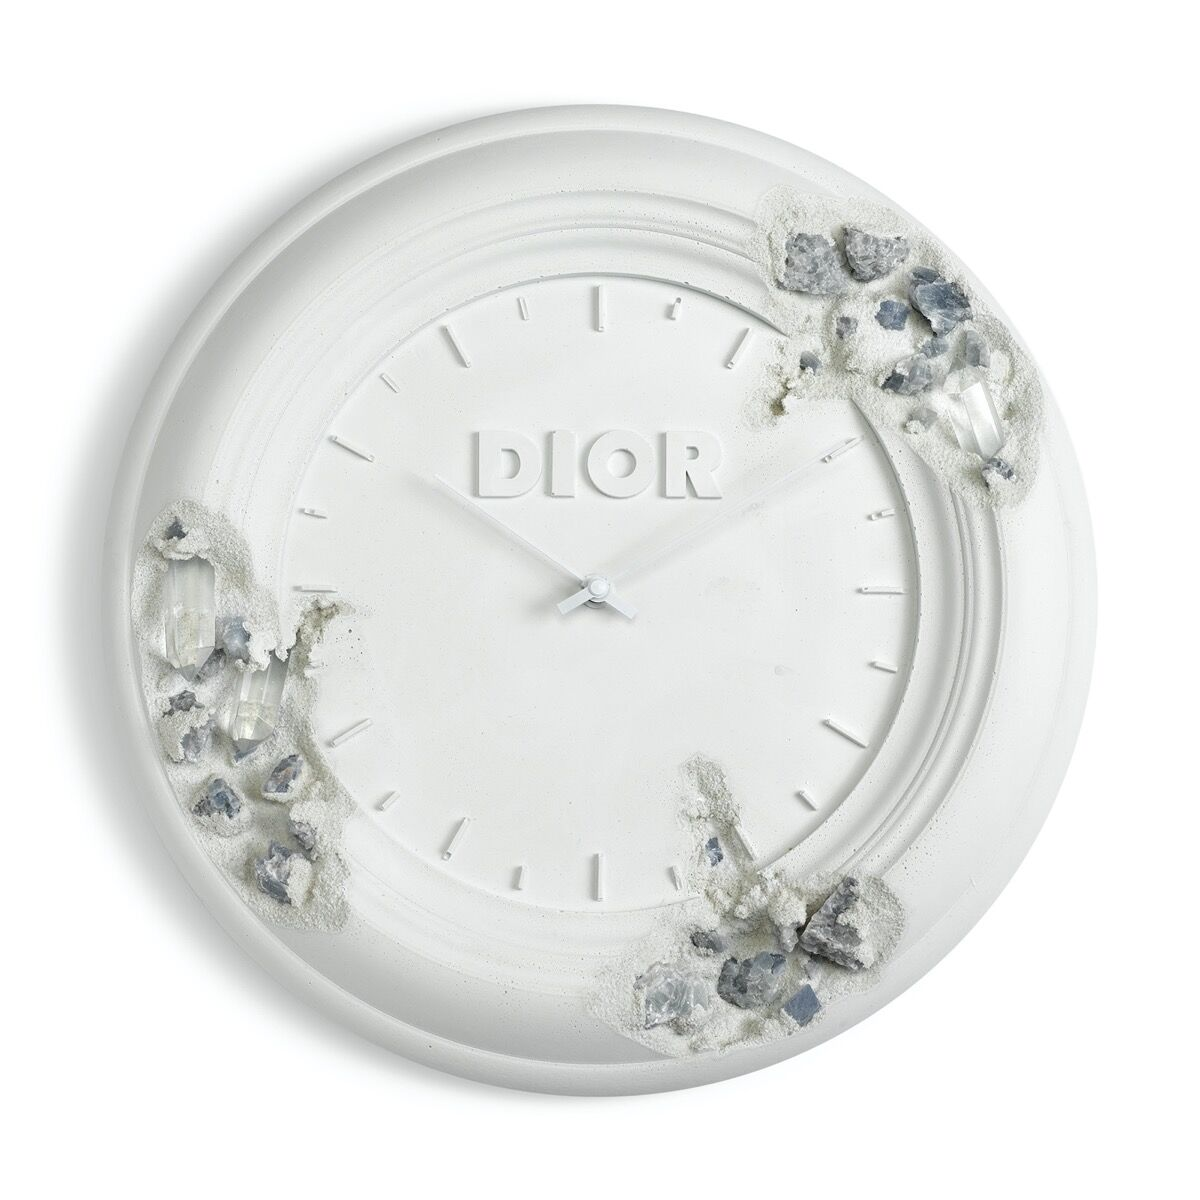 Daniel Arsham x Dior, Future Relic Eroded Clock, 2020. Courtesy of the artist and Christie's Images Ltd. 2020.